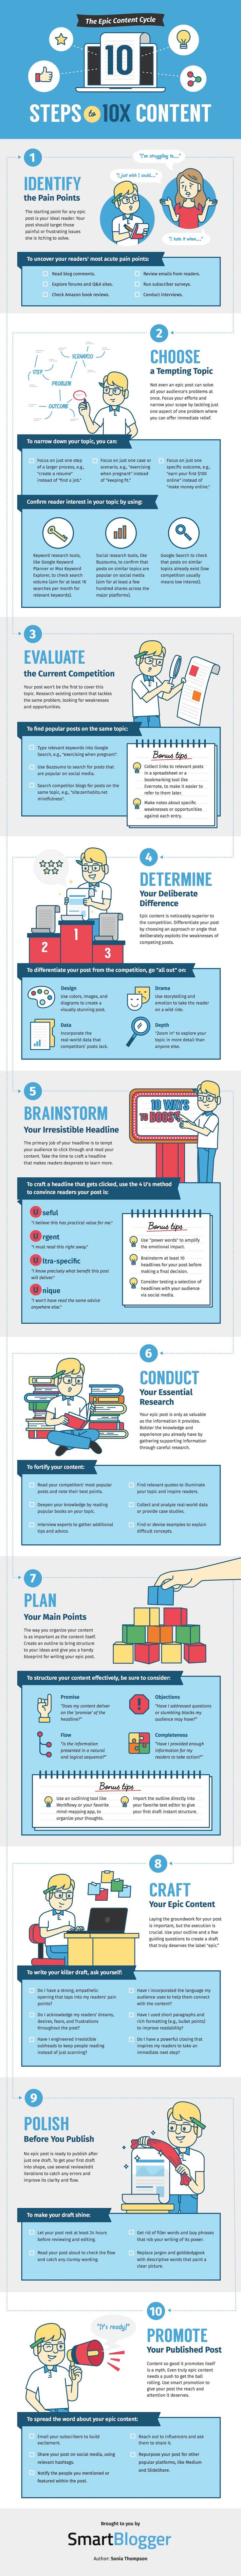 Still Not Content Marketing? 10 Steps to Create a Successful Strategy #Infographic